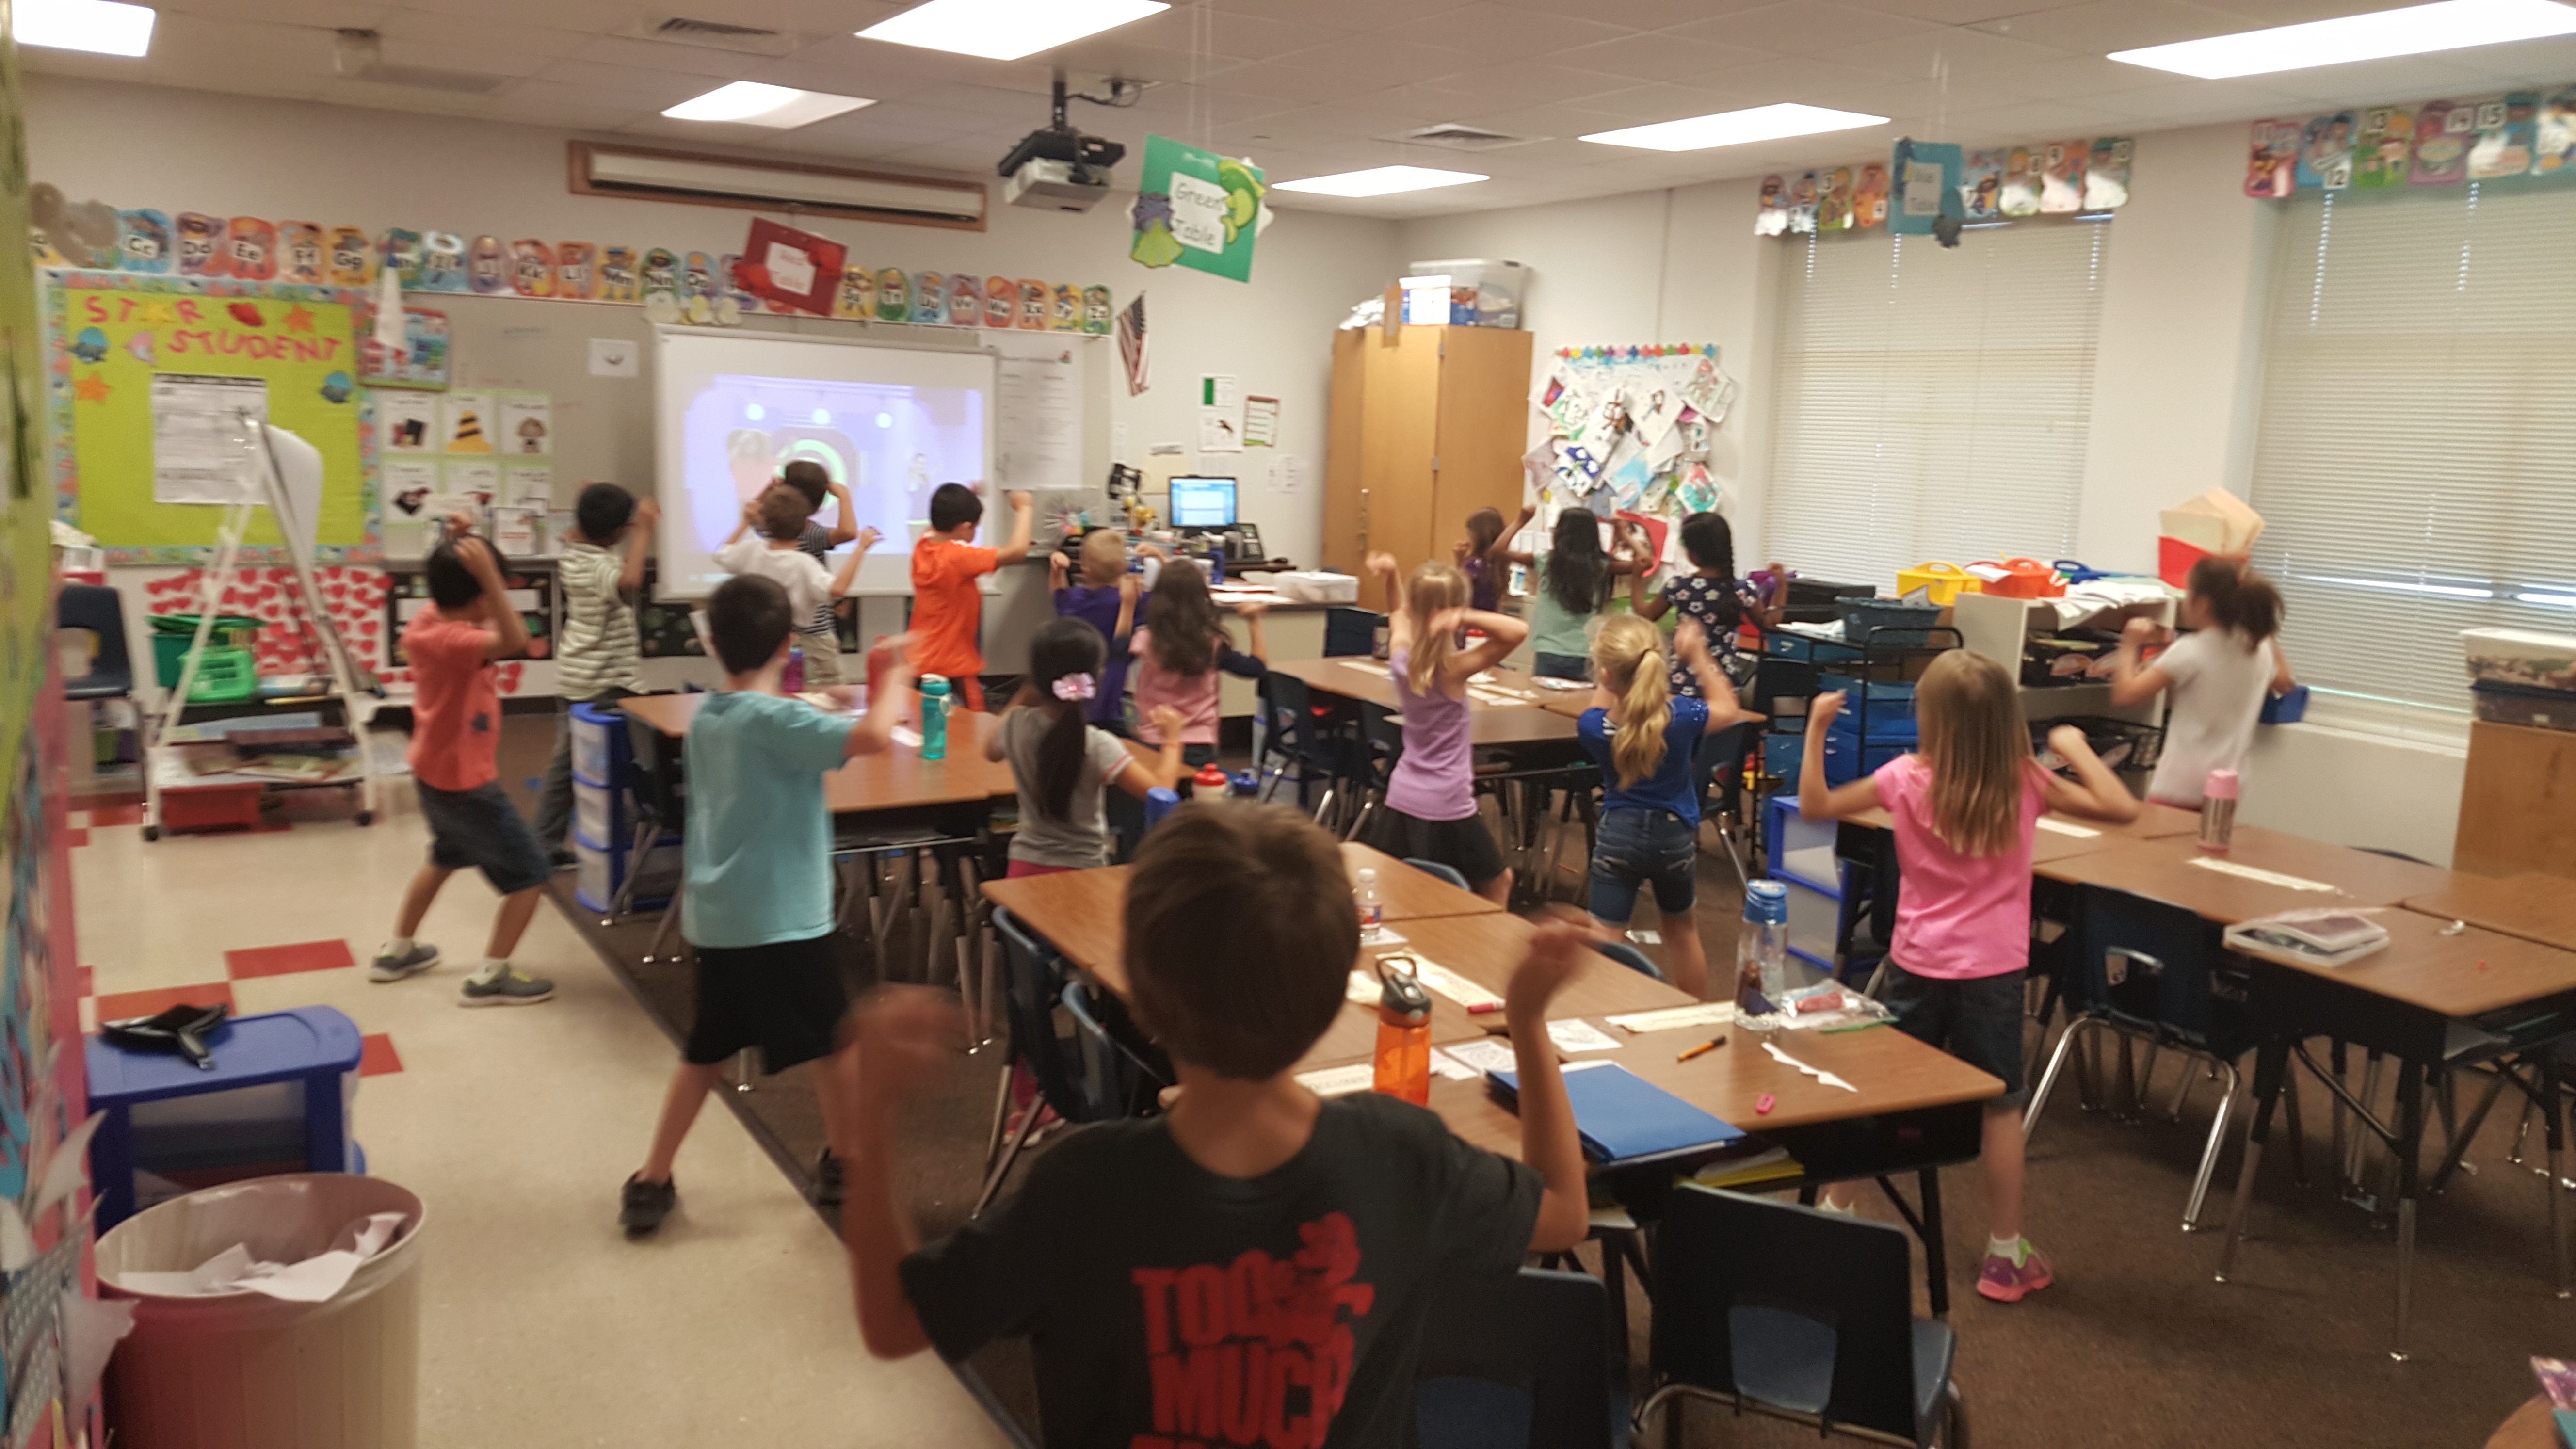 kids exercising with GoNoodle in the classroom